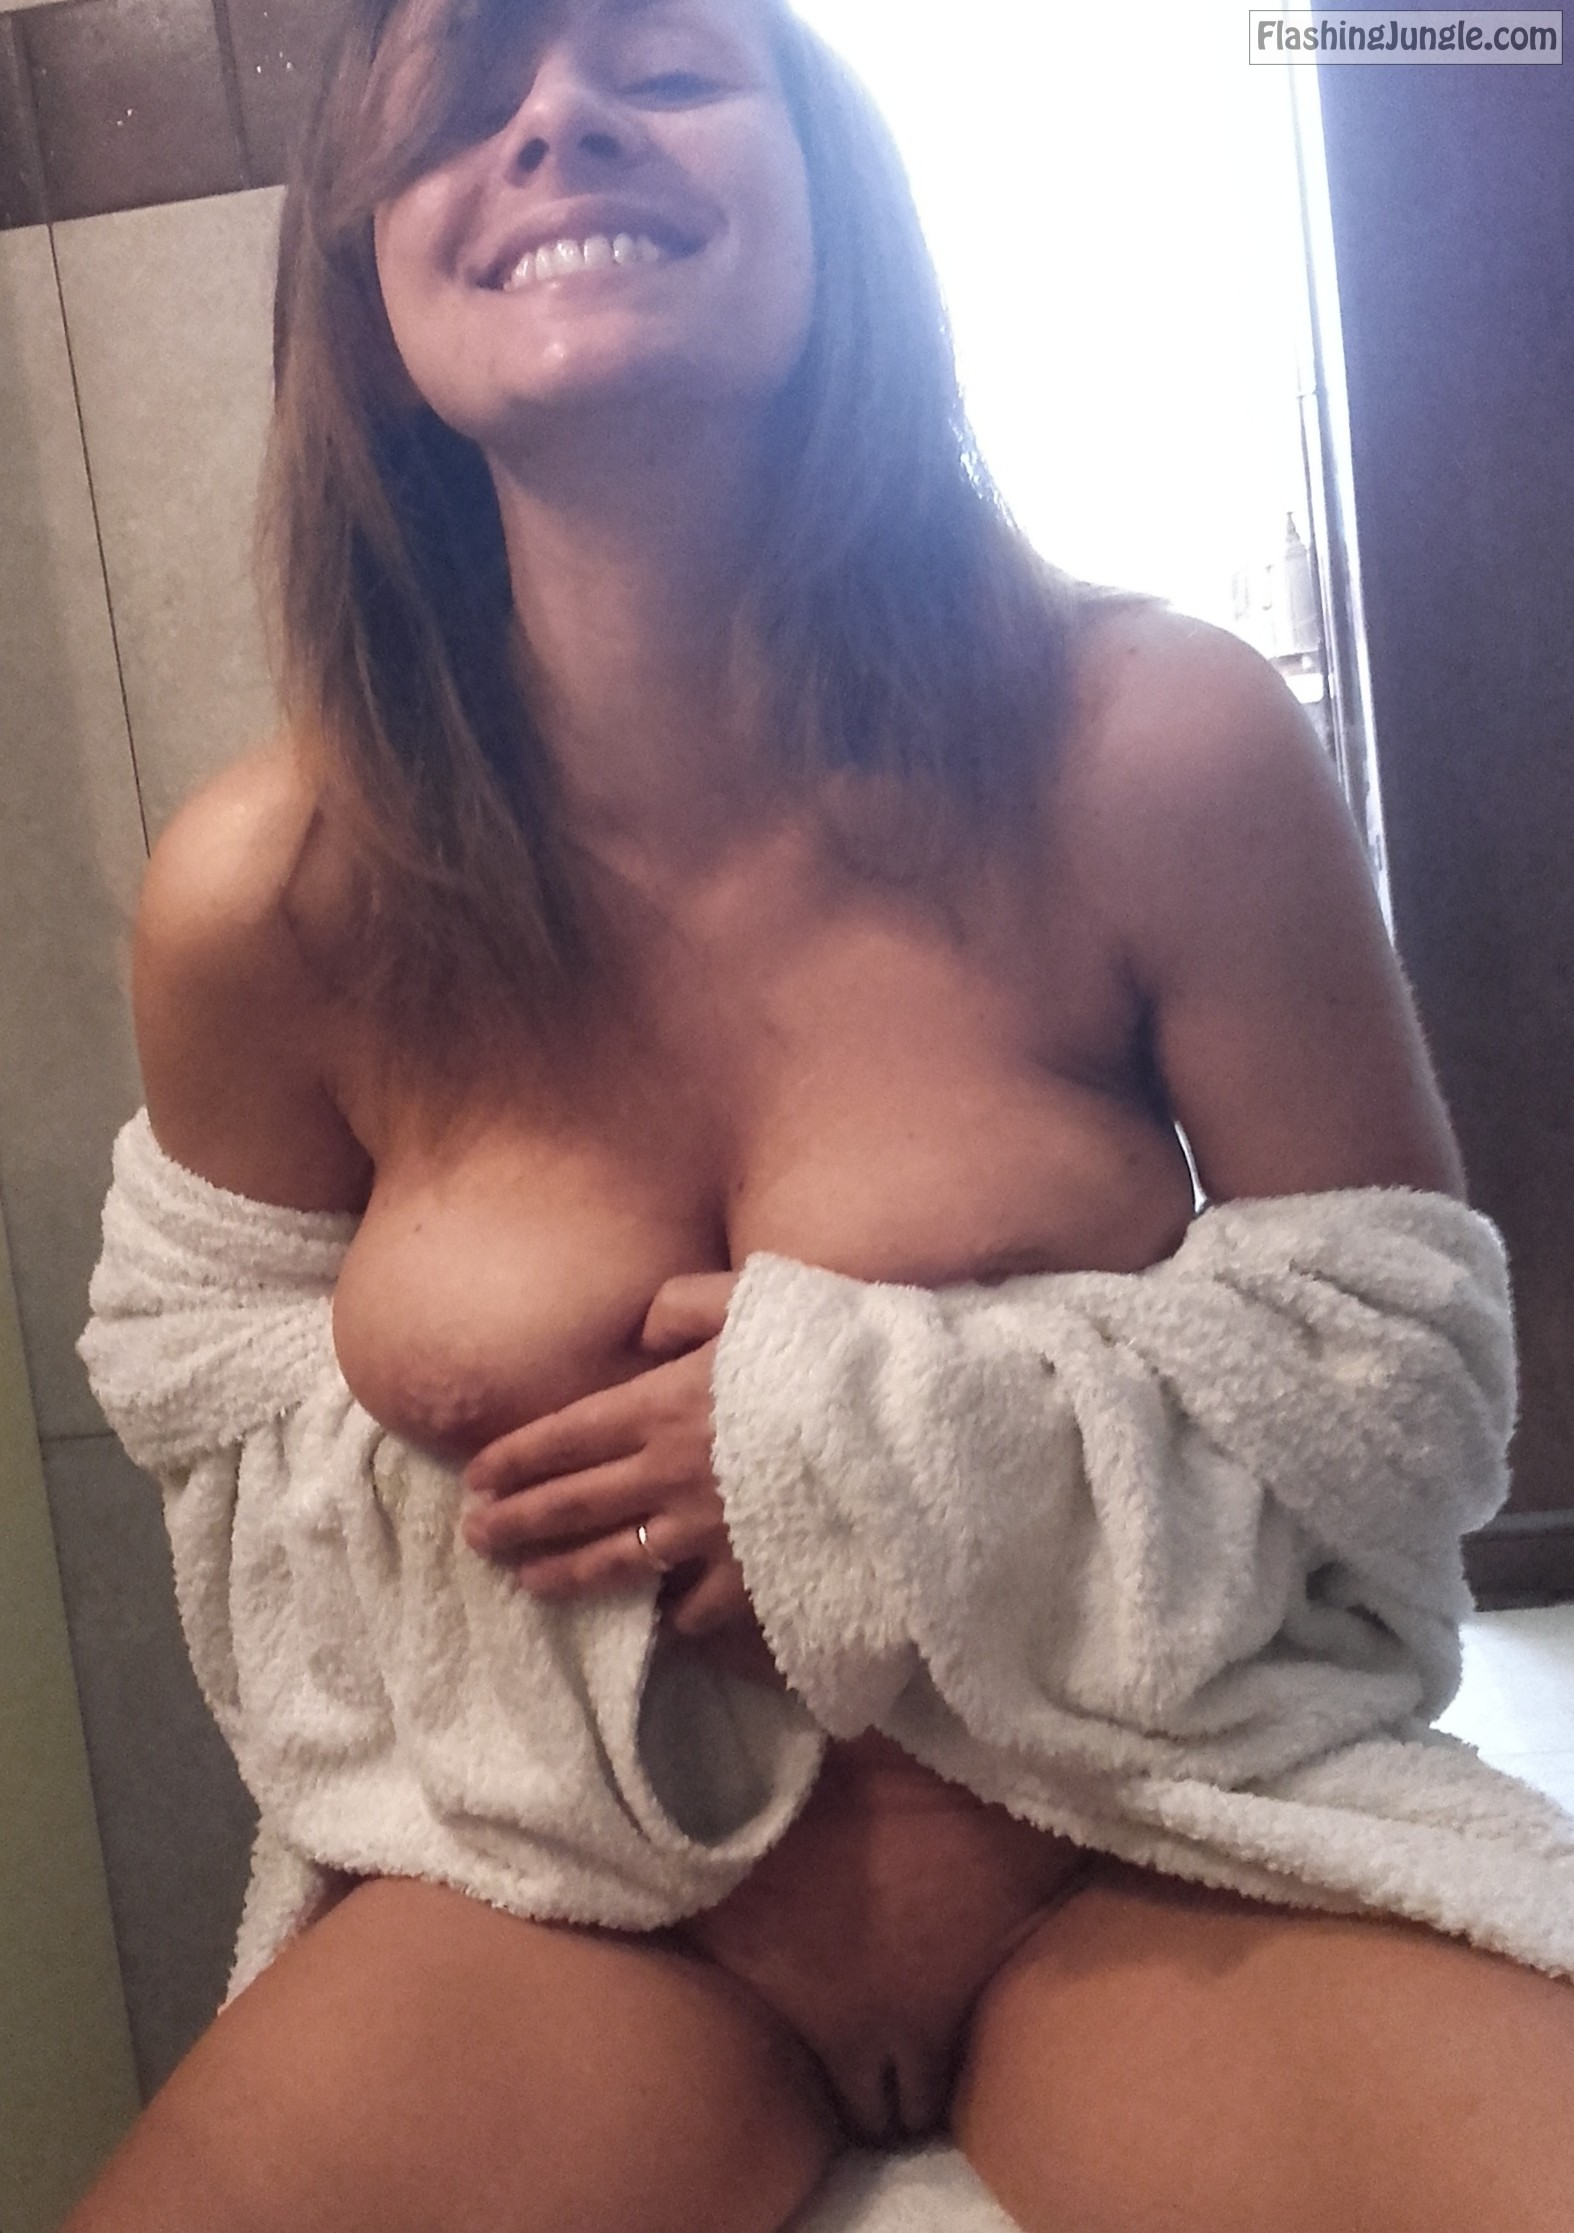 Very Cute Smiling Babe After Shower real nudity pussy flash no panties boobs flash